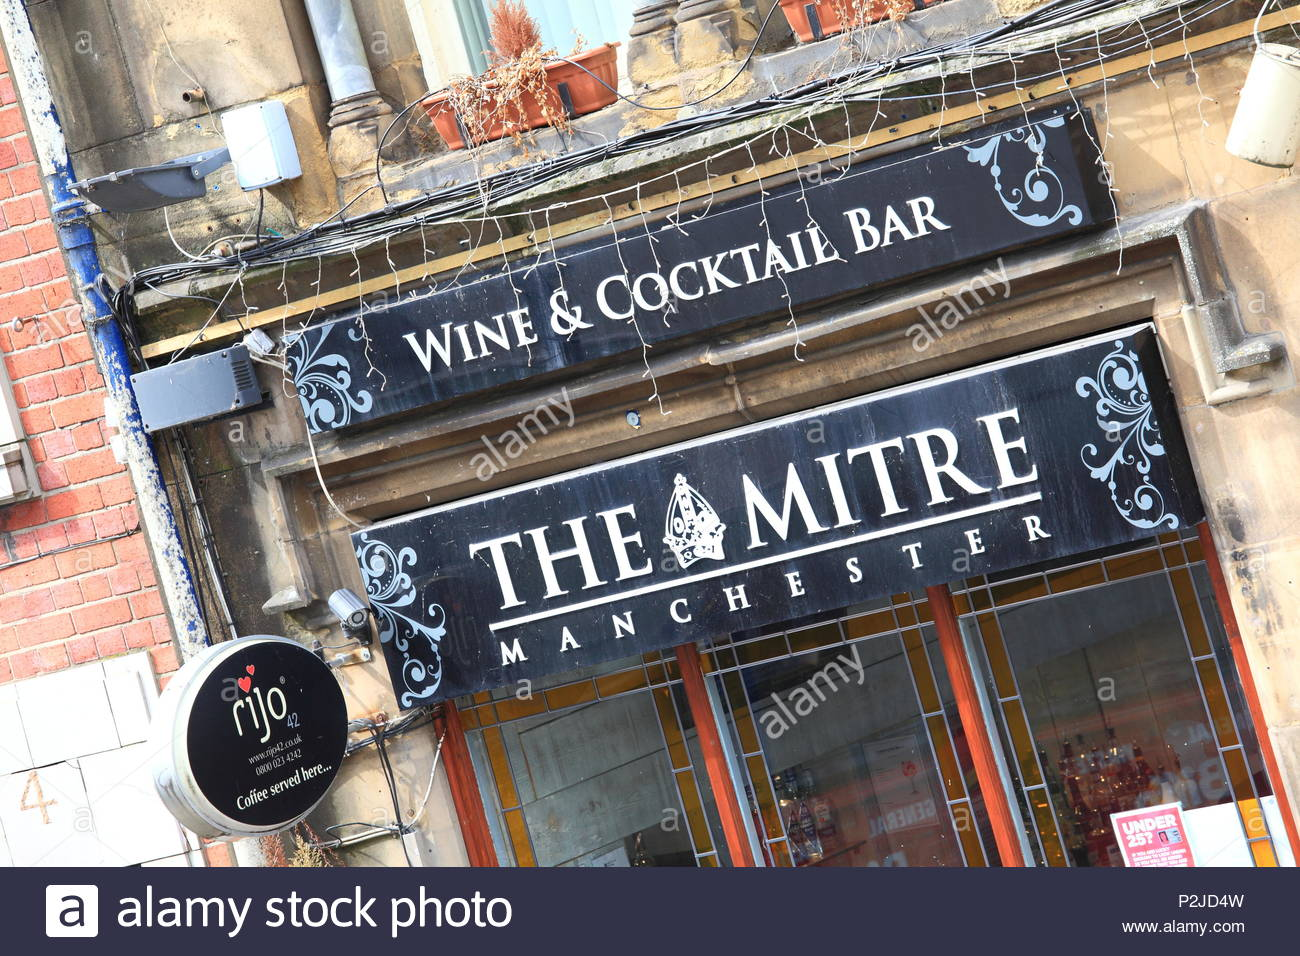 The Mitre Wine And Cocktail Bar at Manchester City Centre, Manchester UK Summer June 2018 Stock Photo